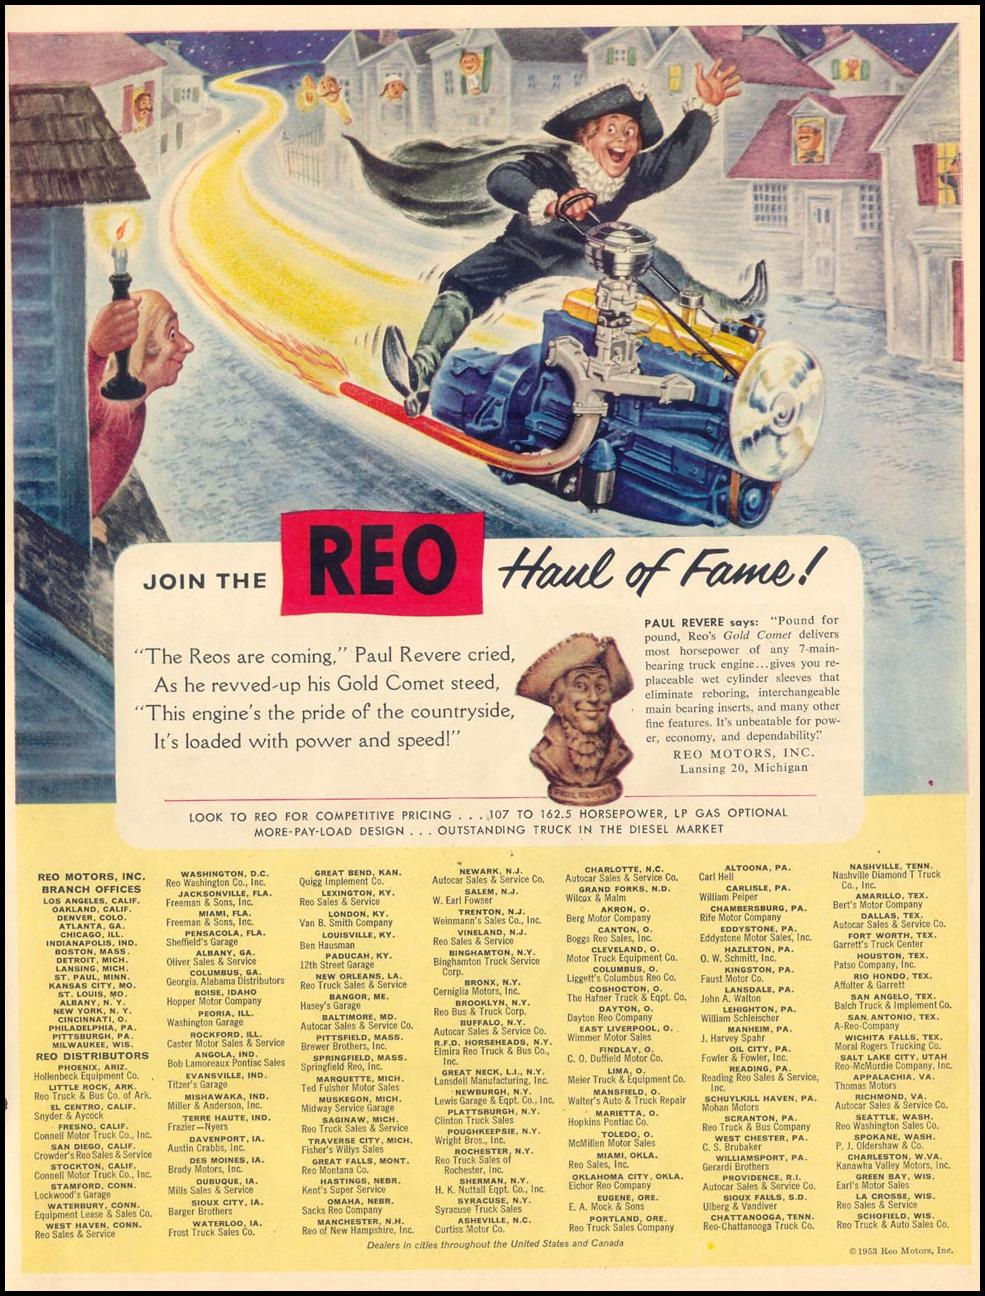 REO GOLD COMET TRUCK ENGINES LIFE 04/13/1953 p. 121